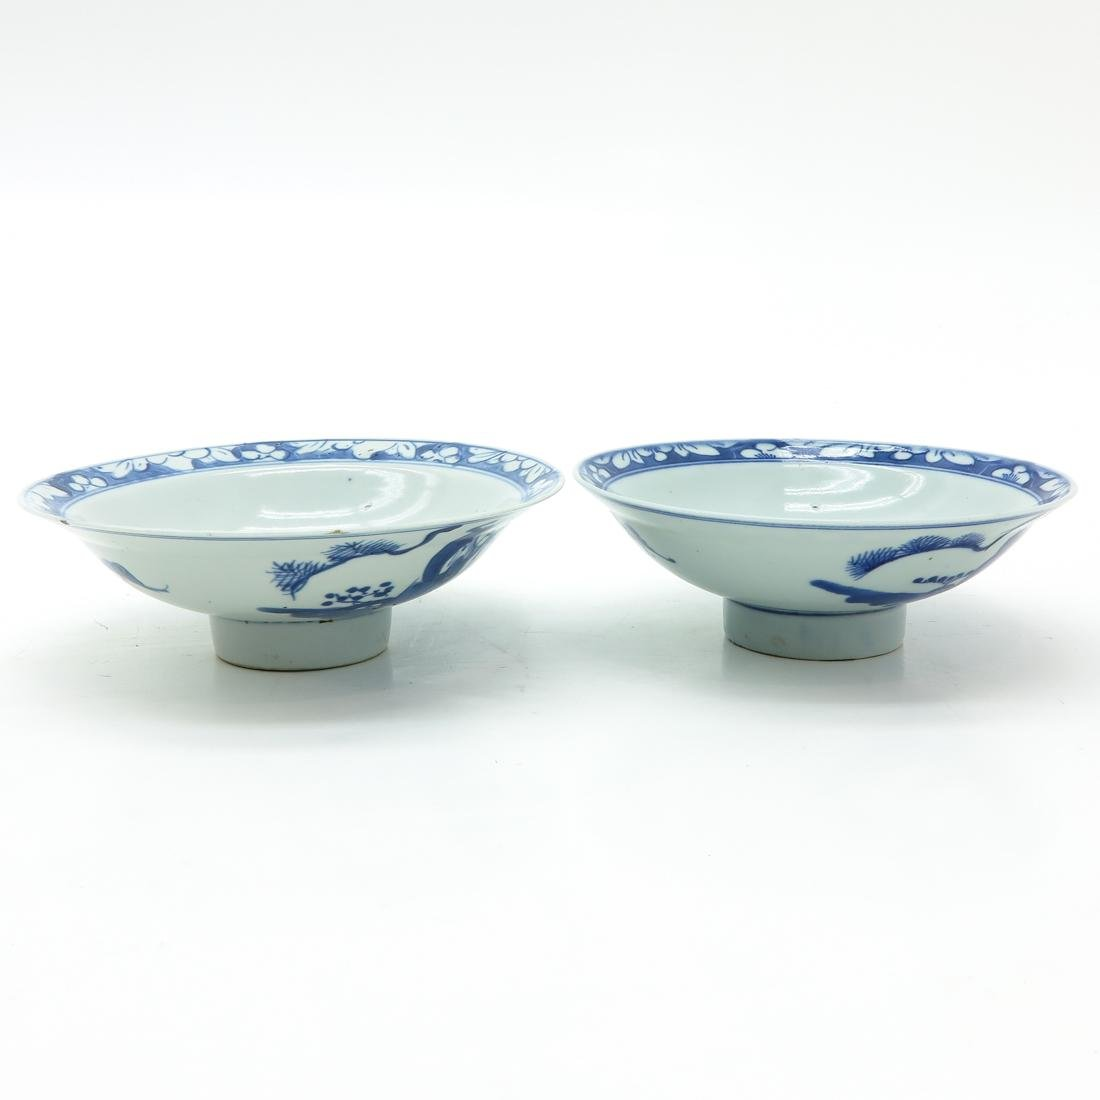 Lot of 2 Bowls - 6